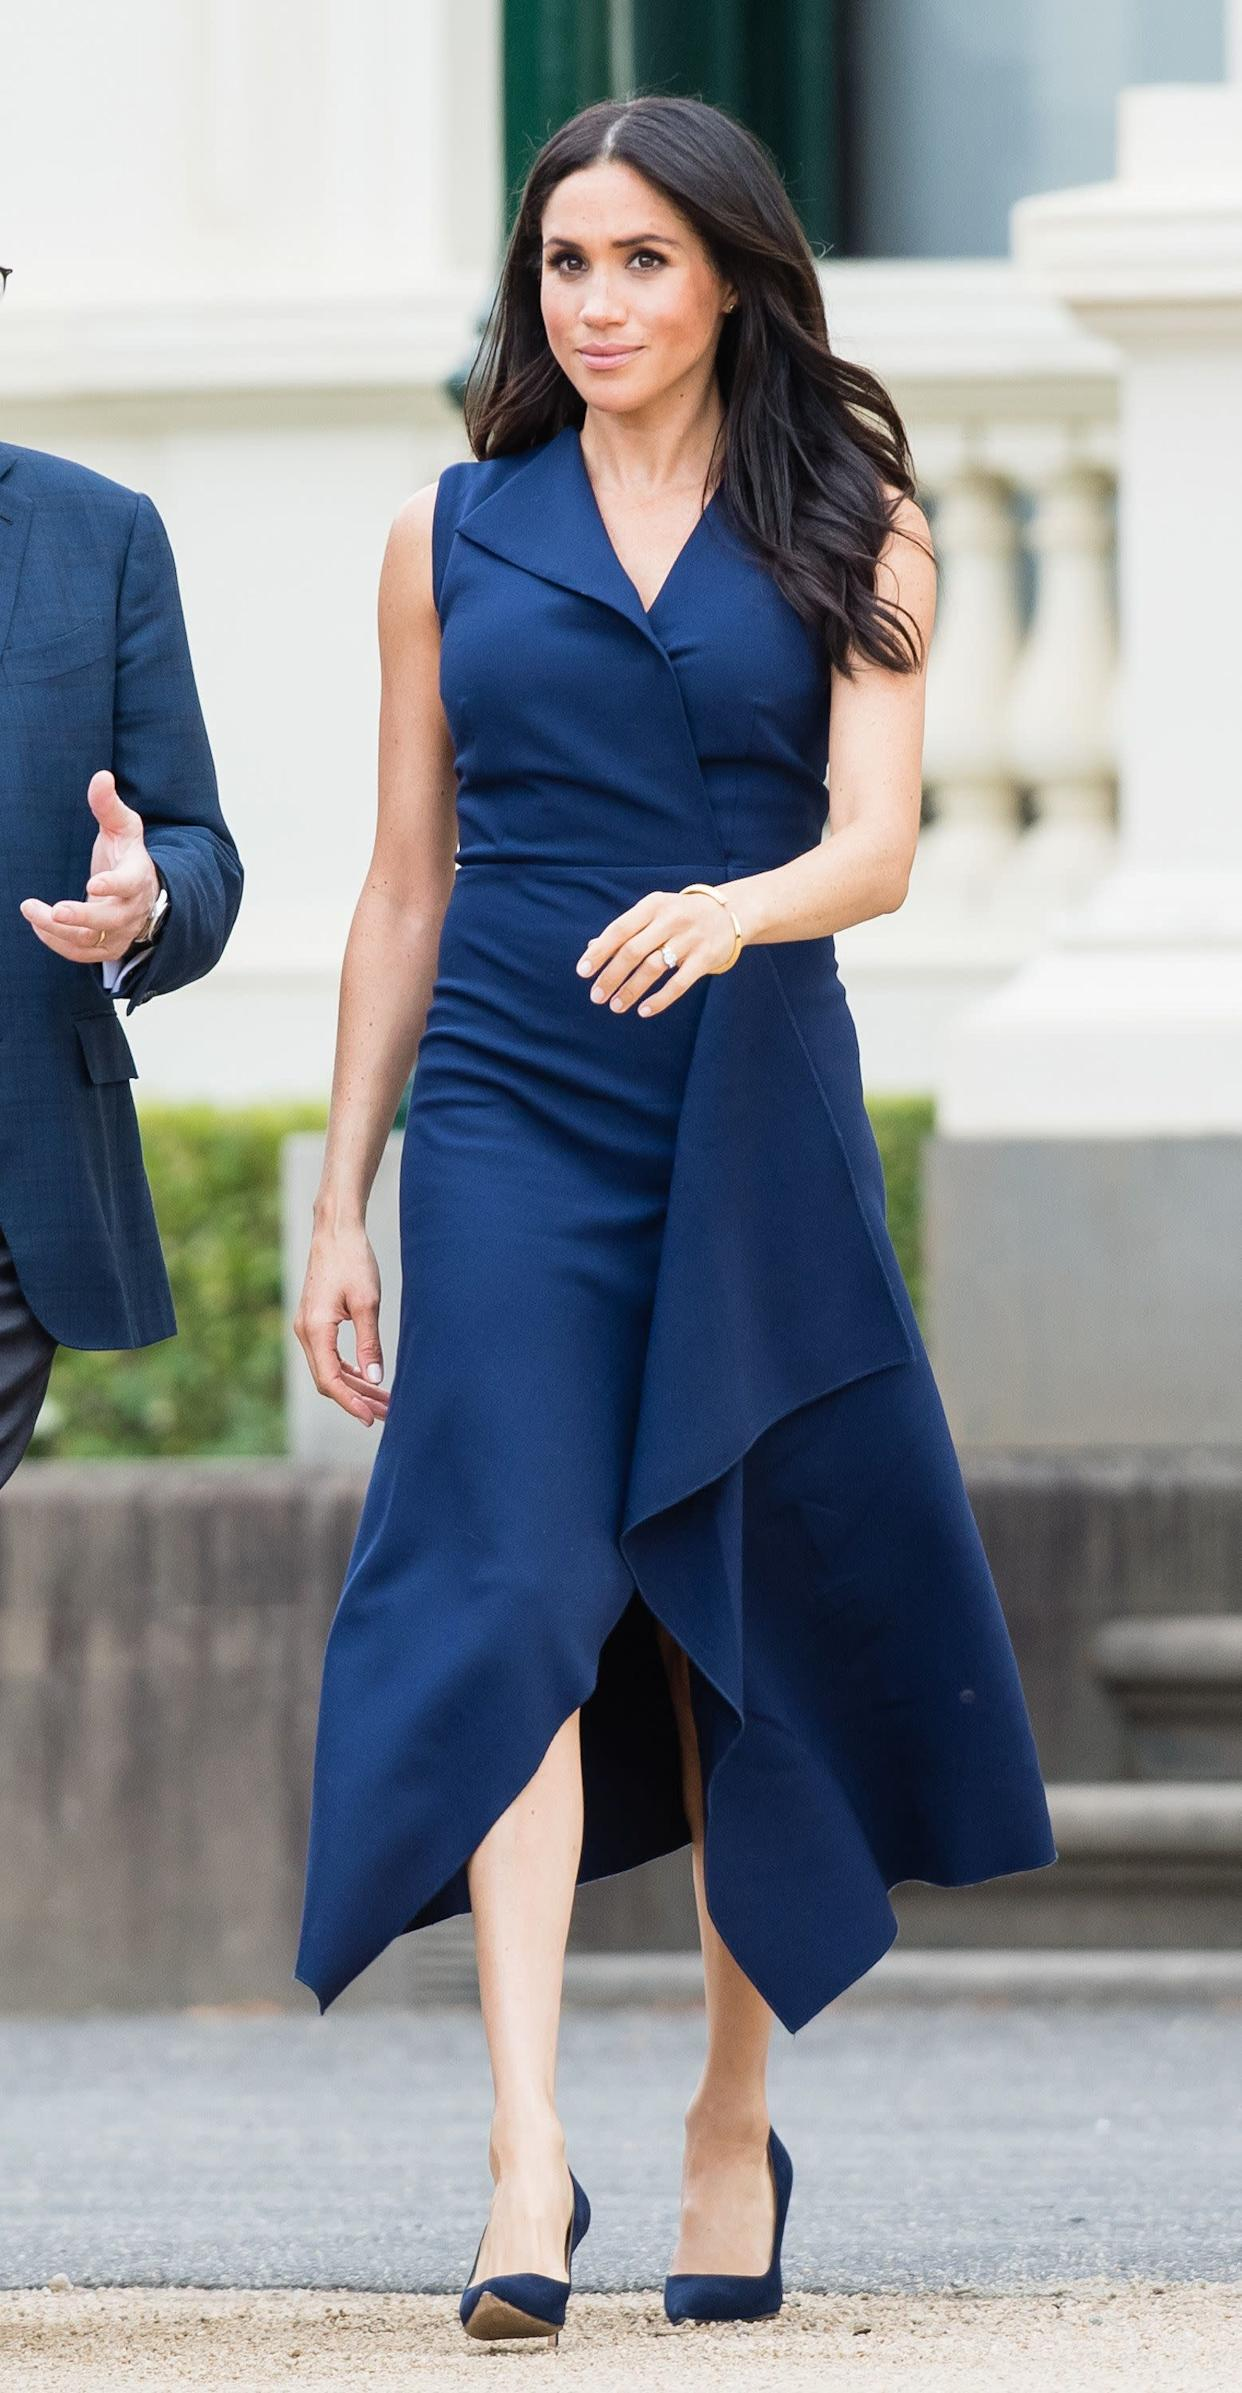 "The duchess wears a <a href=""https://global.dionlee.com/shop/dion-lee/new-/folded-sail-dress-a9564-p19/281031"" rel=""nofollow noopener"" target=""_blank"" data-ylk=""slk:Dion Lee dress"" class=""link rapid-noclick-resp"">Dion Lee dress</a> on Oct. 18, day three of the royal tour. The dress, which costs $990, is currently available for preorder."